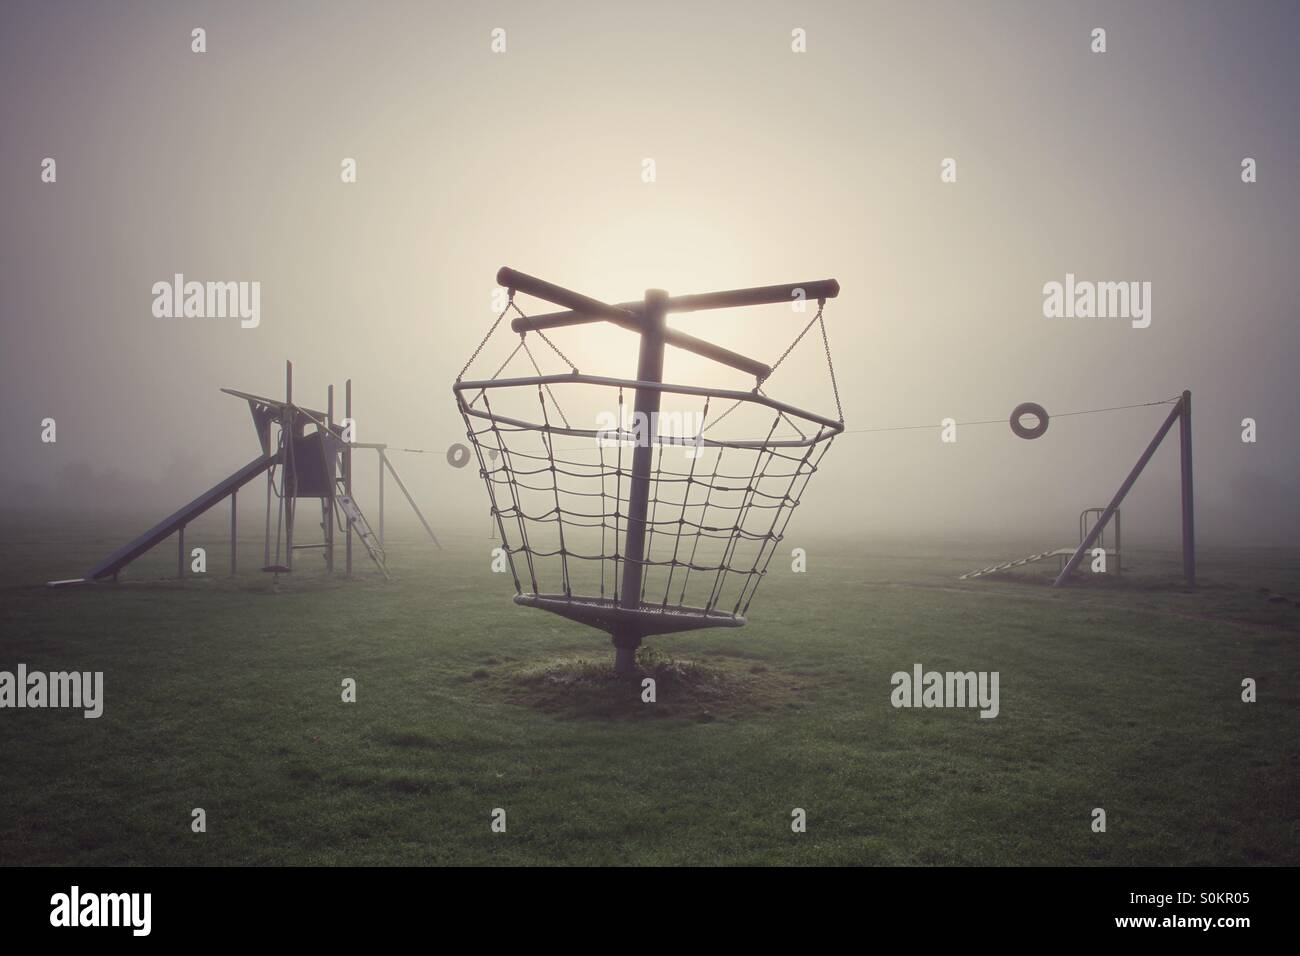 A deserted children's playground on a cold foggy morning. - Stock Image